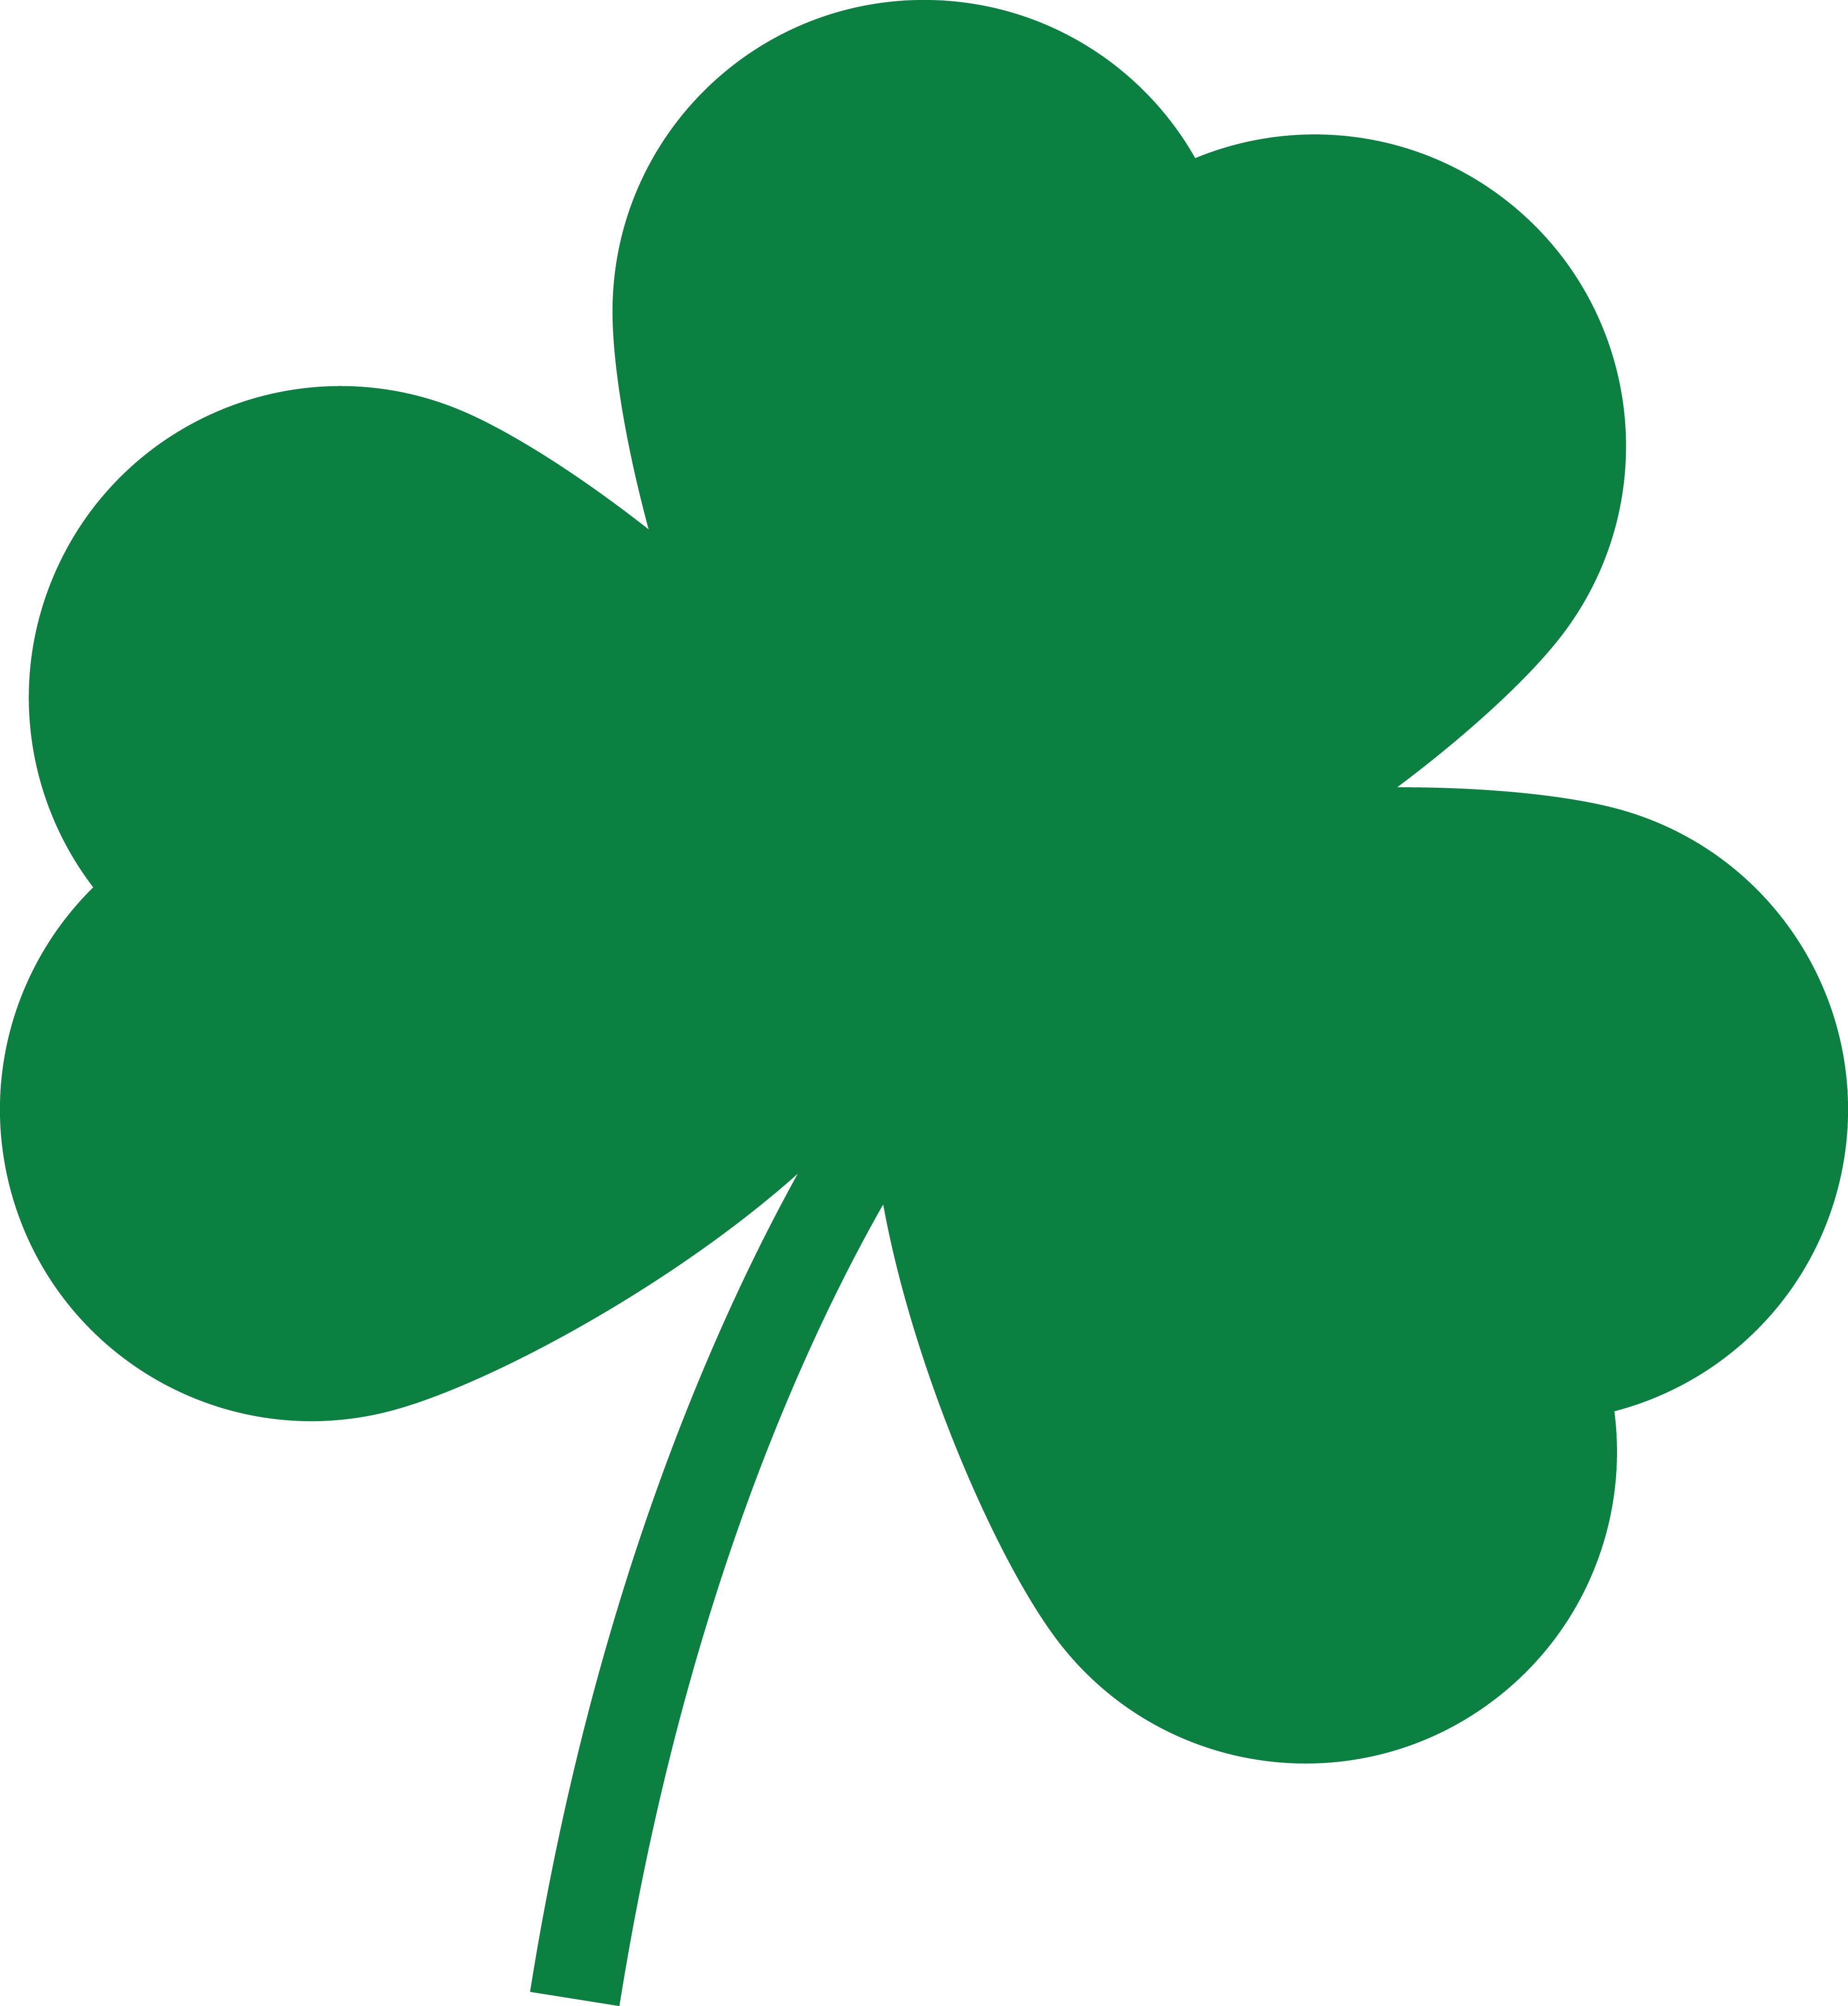 4000x4342 Free Clipart Of A St Paddys Day Solid Green Shamrock Four Leaf Clover